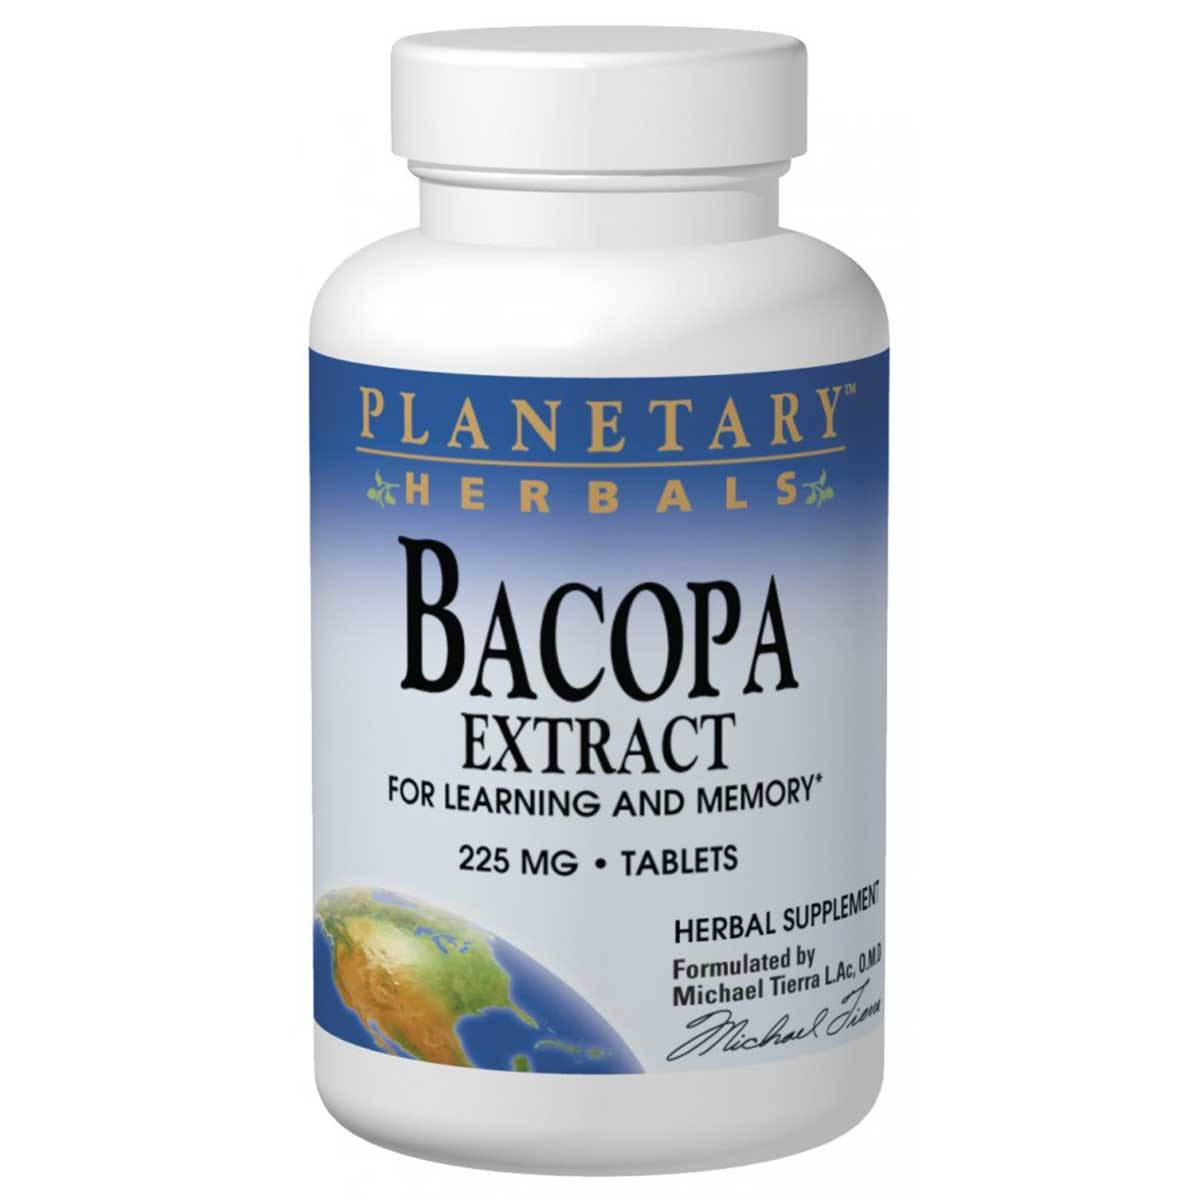 Planetary Herbals Bacopa Extract 225mg 120 Tabs Herbs Planetary Herbals  (1058184003627)